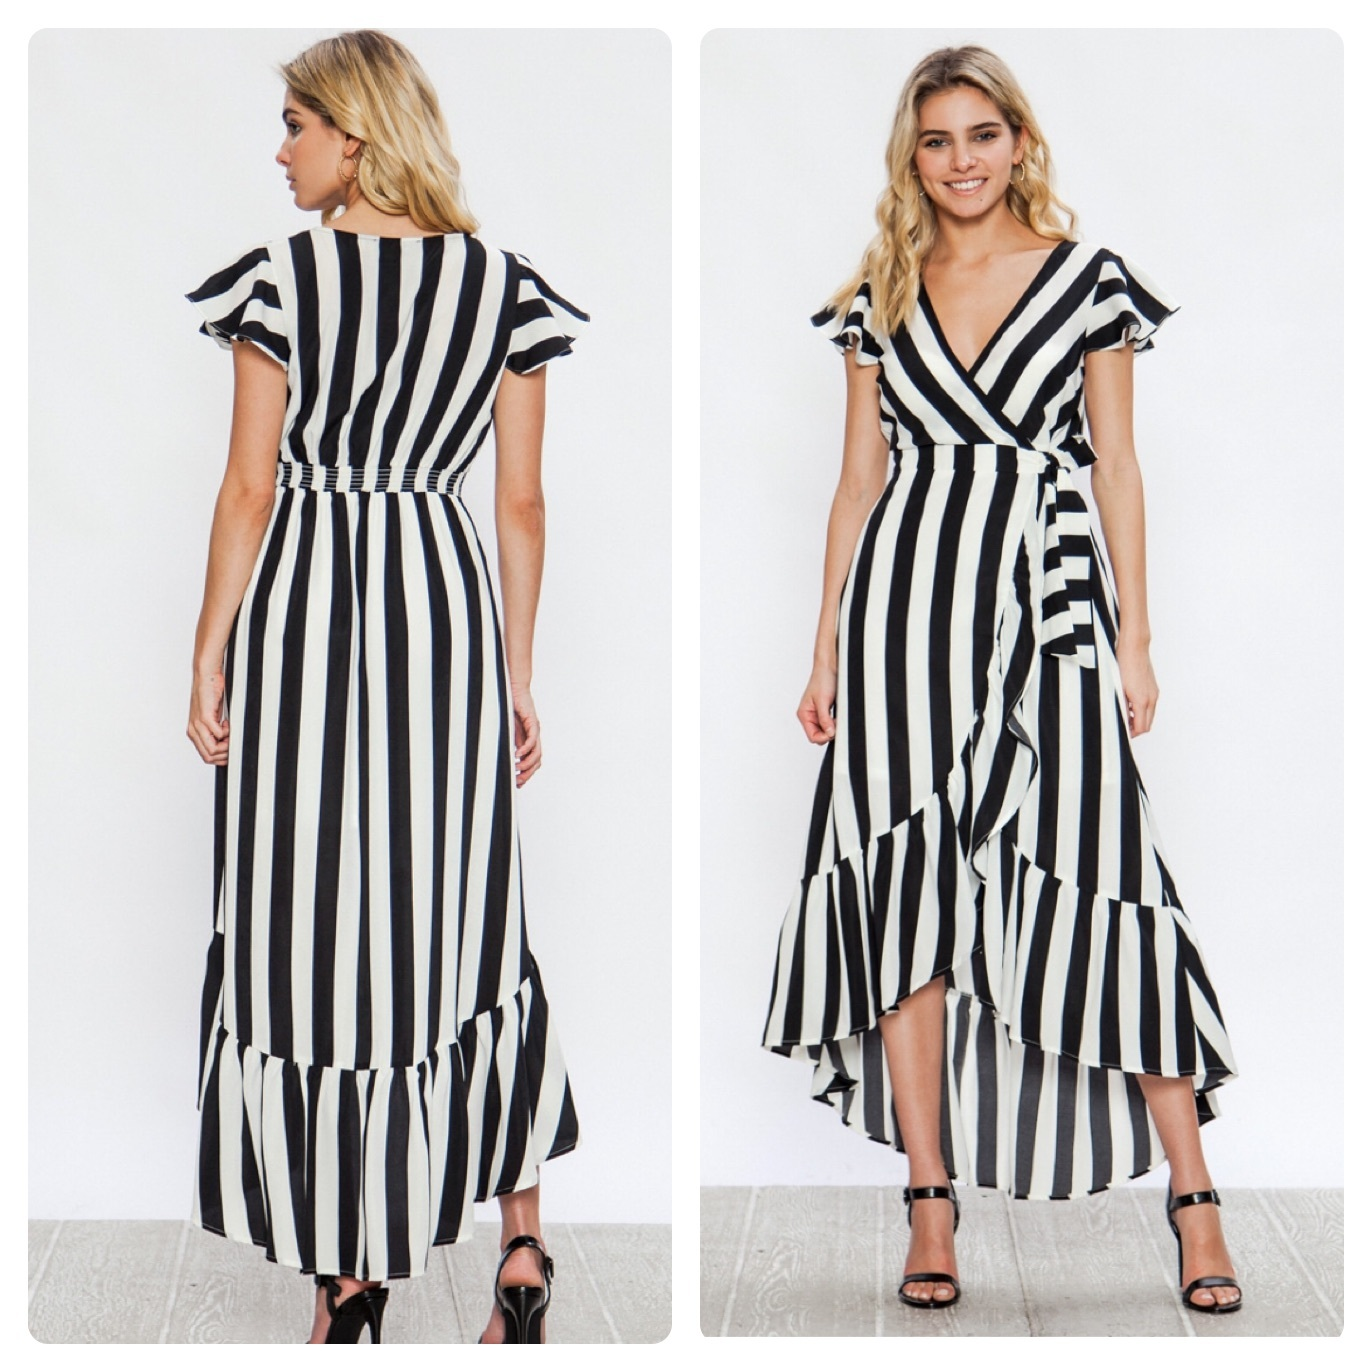 STRIPE DRESS $45